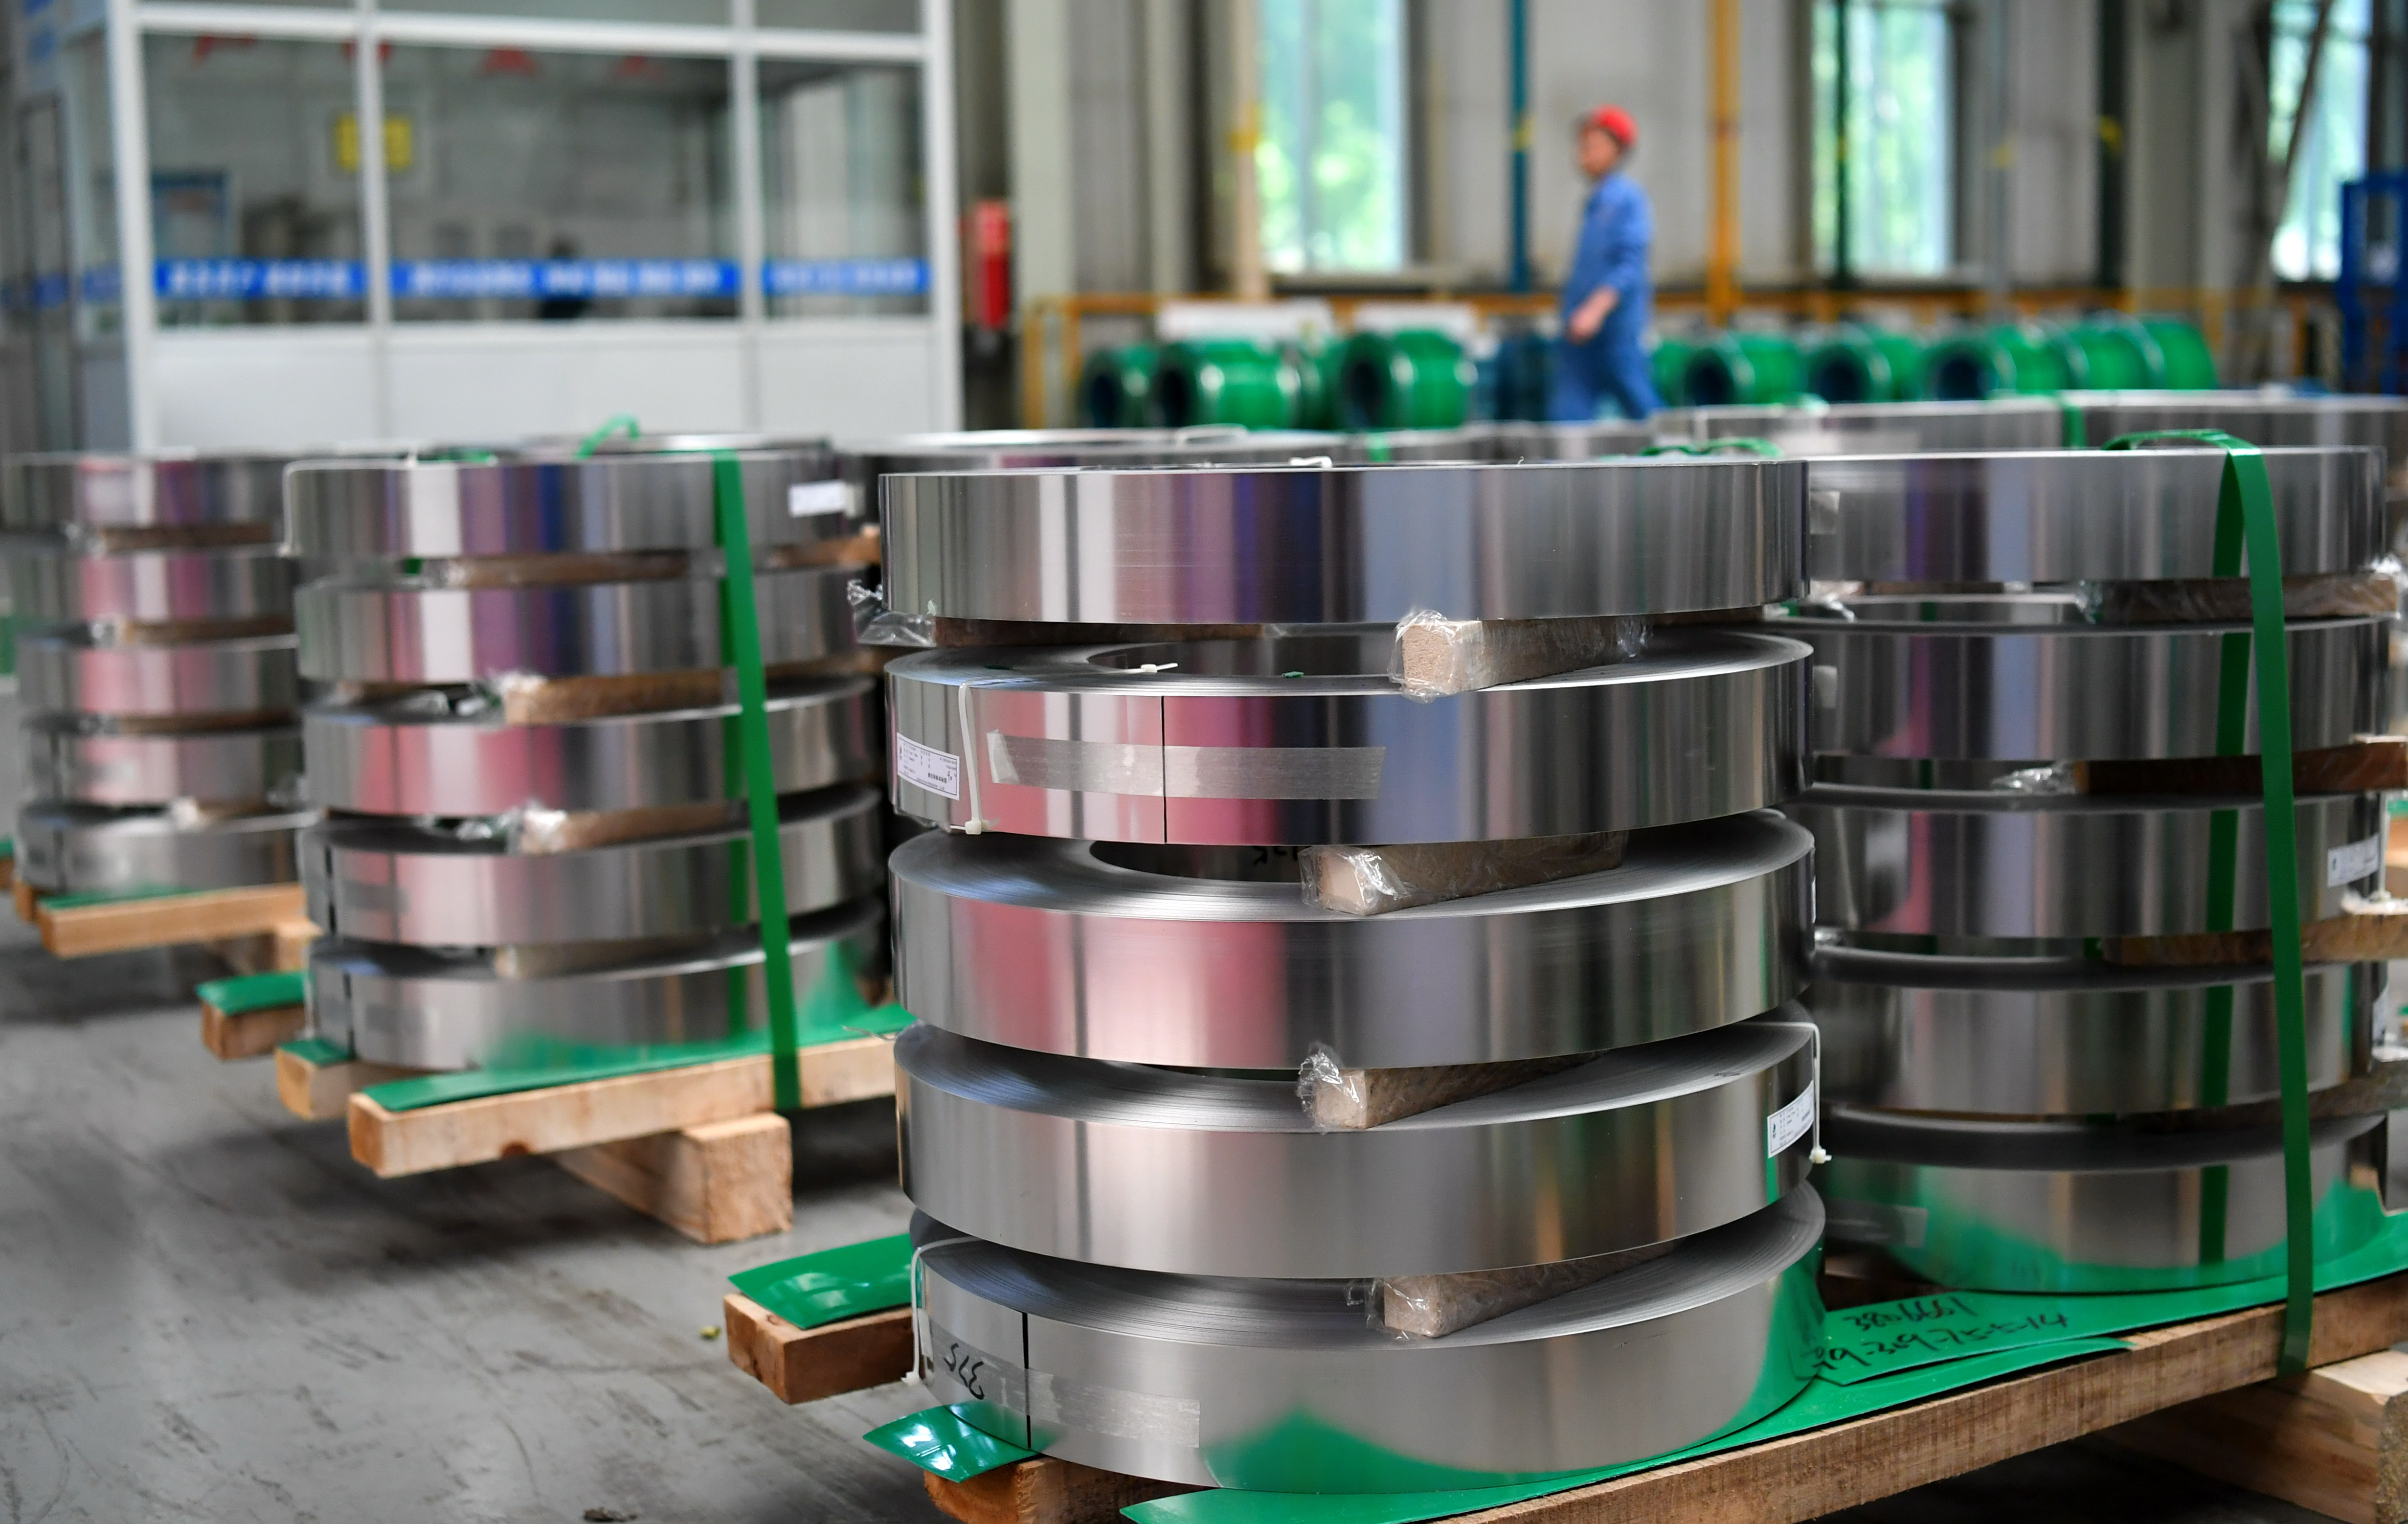 China to impose anti-dumping duties on imported stainless steel products - Xinhua | English.news.cn